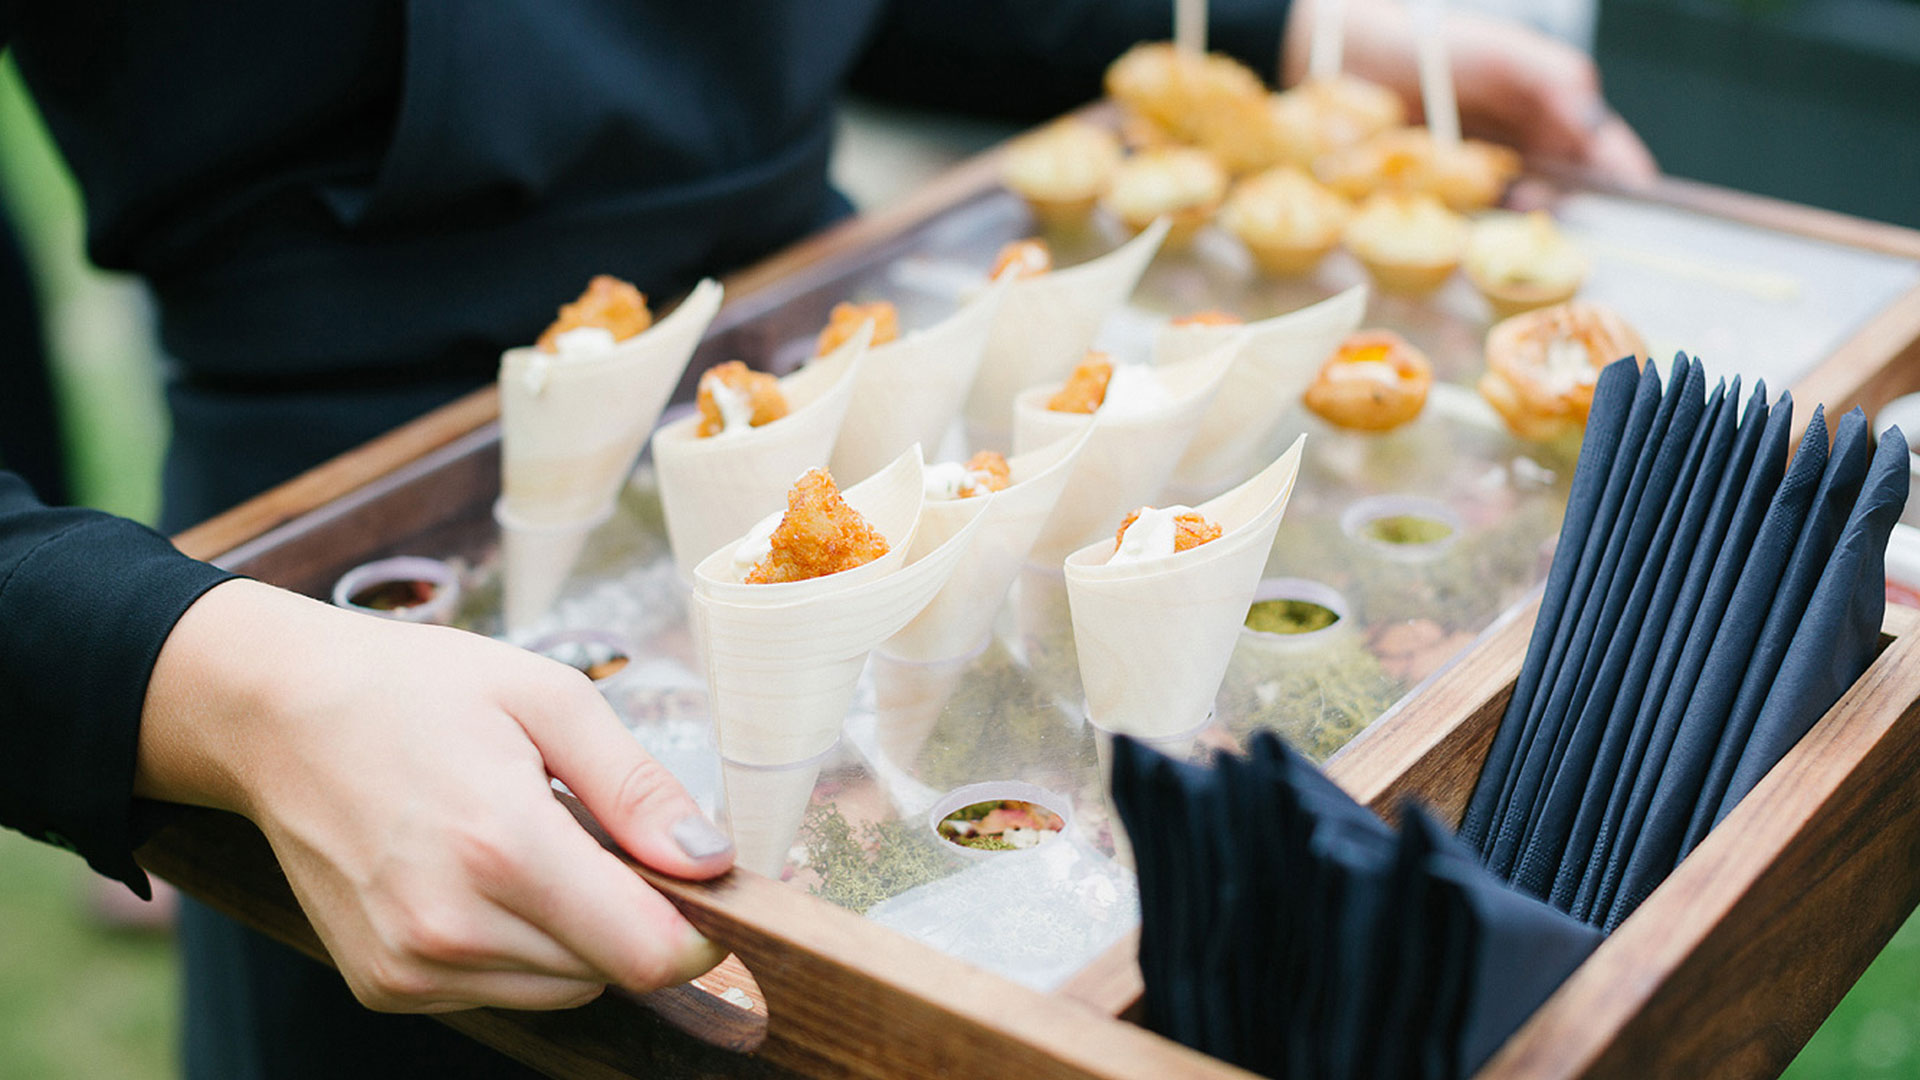 Our expert wedding team can serve up delicious wedding canapes to your wedding guest after your wedding ceremony